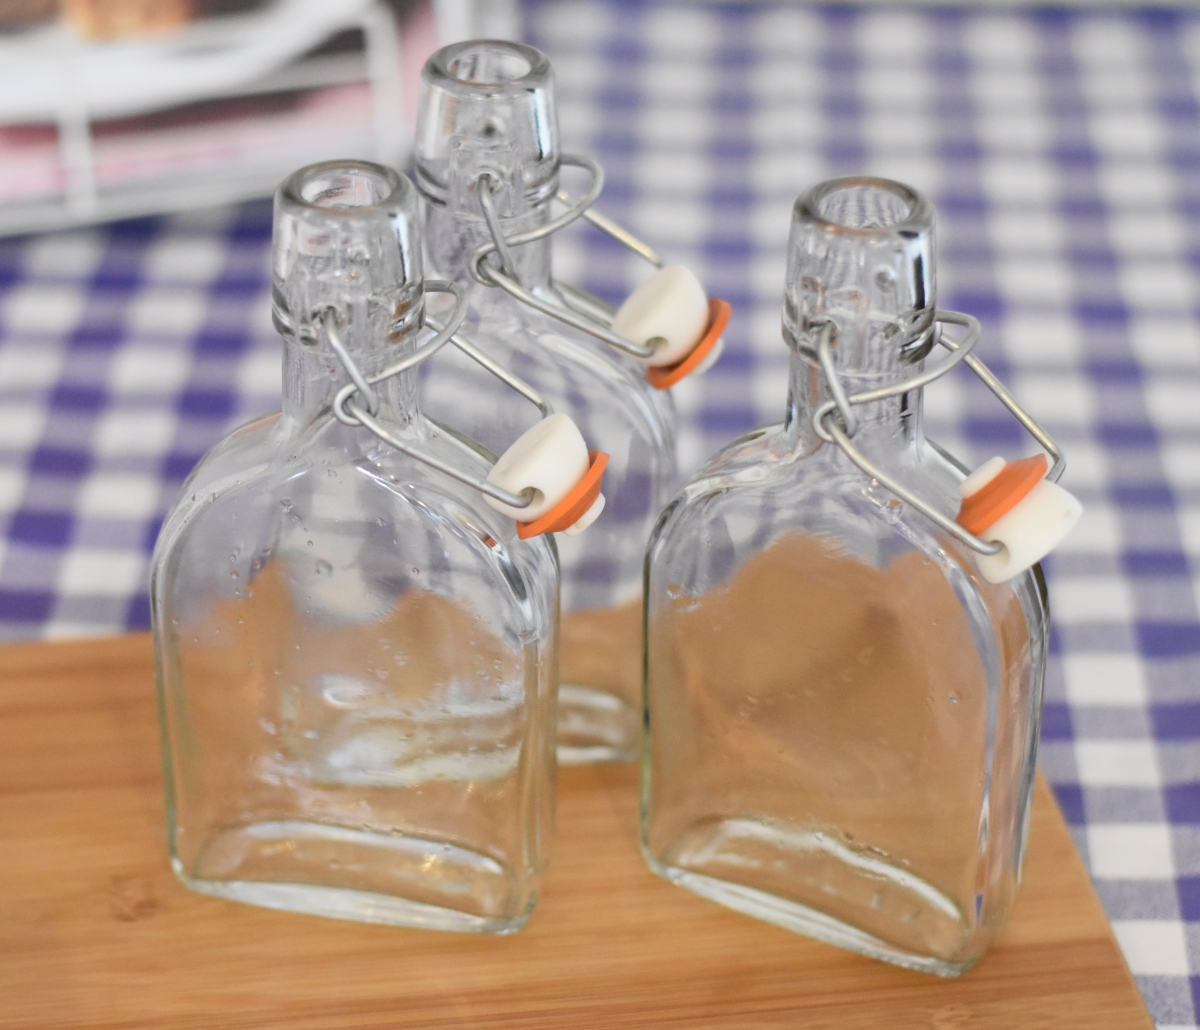 A photo of three empty bottles ready to be filled.